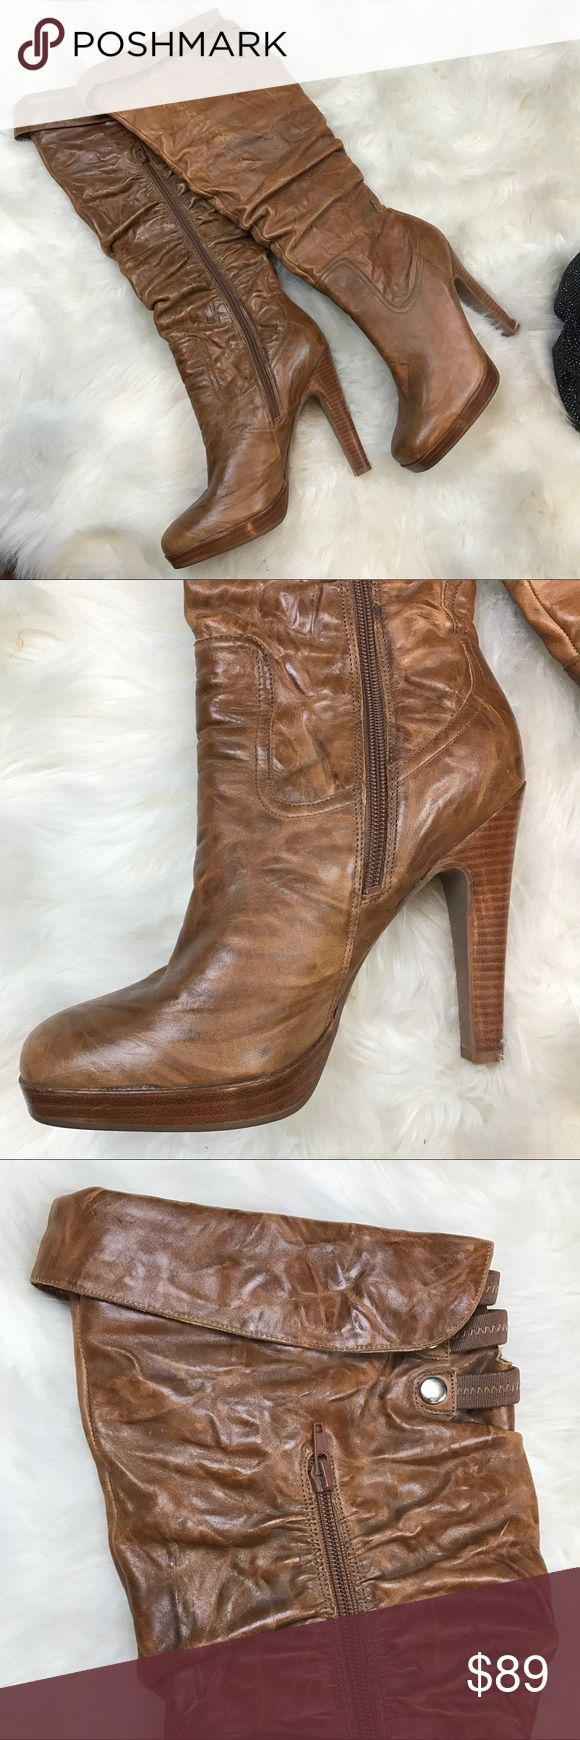 Jessica Simpson YANA tall brown boots Like new  condition .  Lightly worn once . Tall knee high medium brown leather heels . Fold over top ! When they're on you can't even tell they have some booboos !   Flaws shown in photos , price reflects .    💙 please use the offer button  🛍 BUNDLE FOR 10% OFF •   🚭smoke free  🌟 5 star rating   www.thethugwife.com 💀 @thethugwifeboutique             🚫 🙅🏻 N O   TRADES 🙅🏻 🚫 Jessica Simpson Shoes Heeled Boots